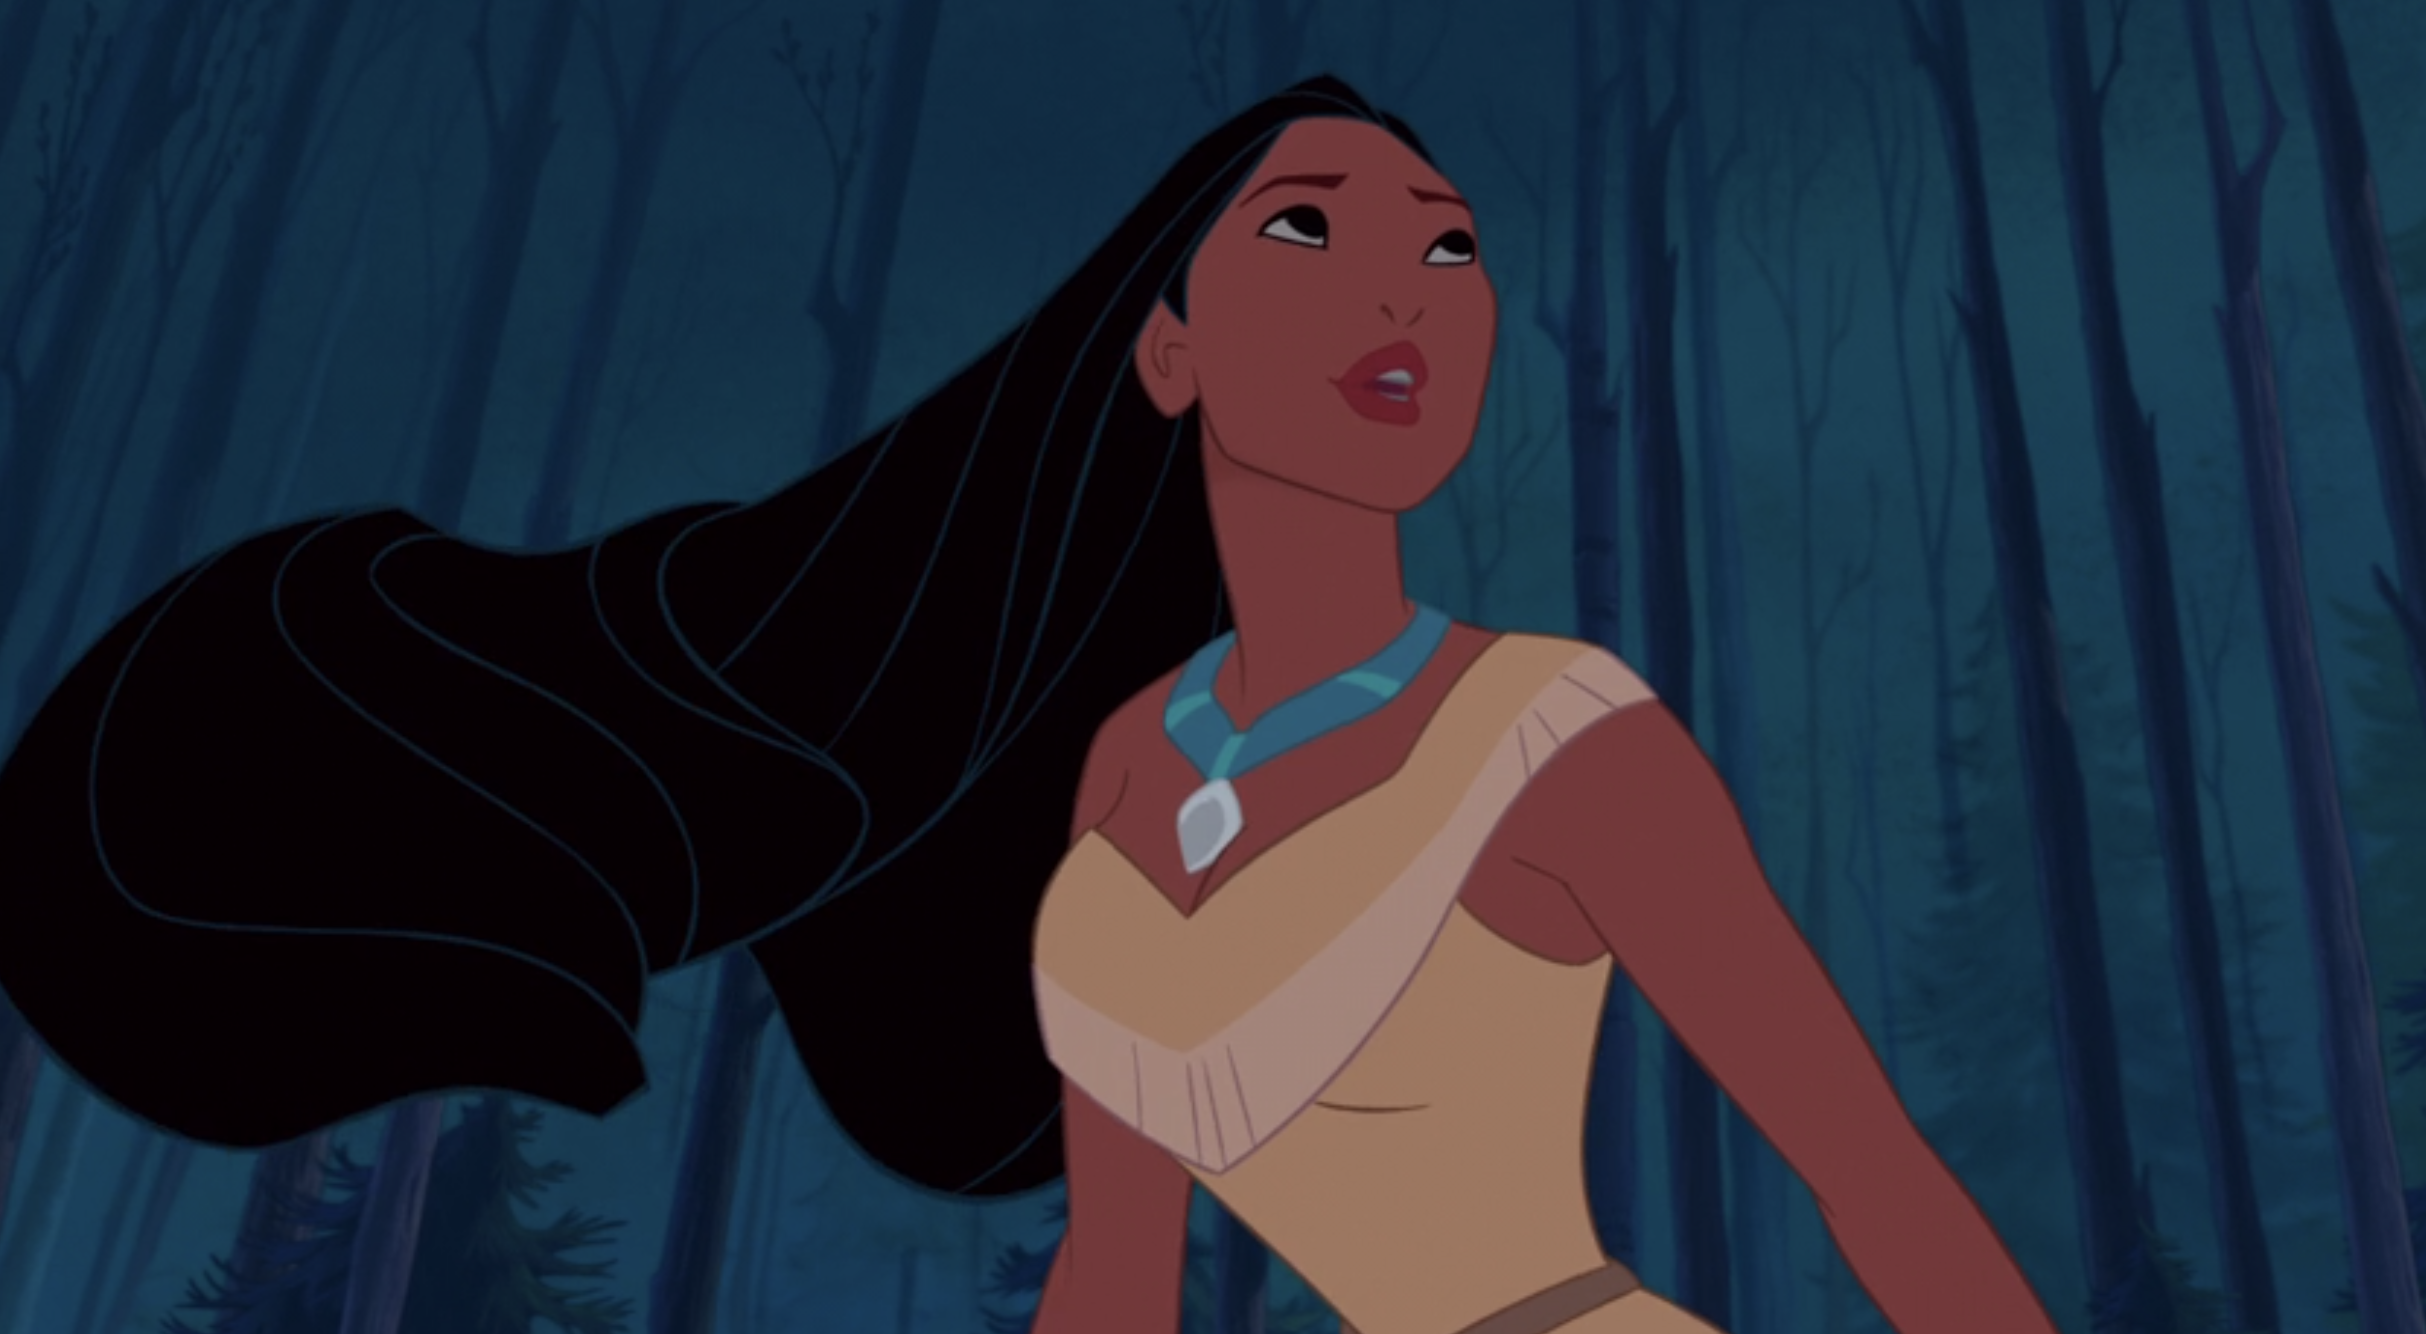 """Pocahontas singing """"Just Around the Riverbend"""" with the wind blowing through her hair"""